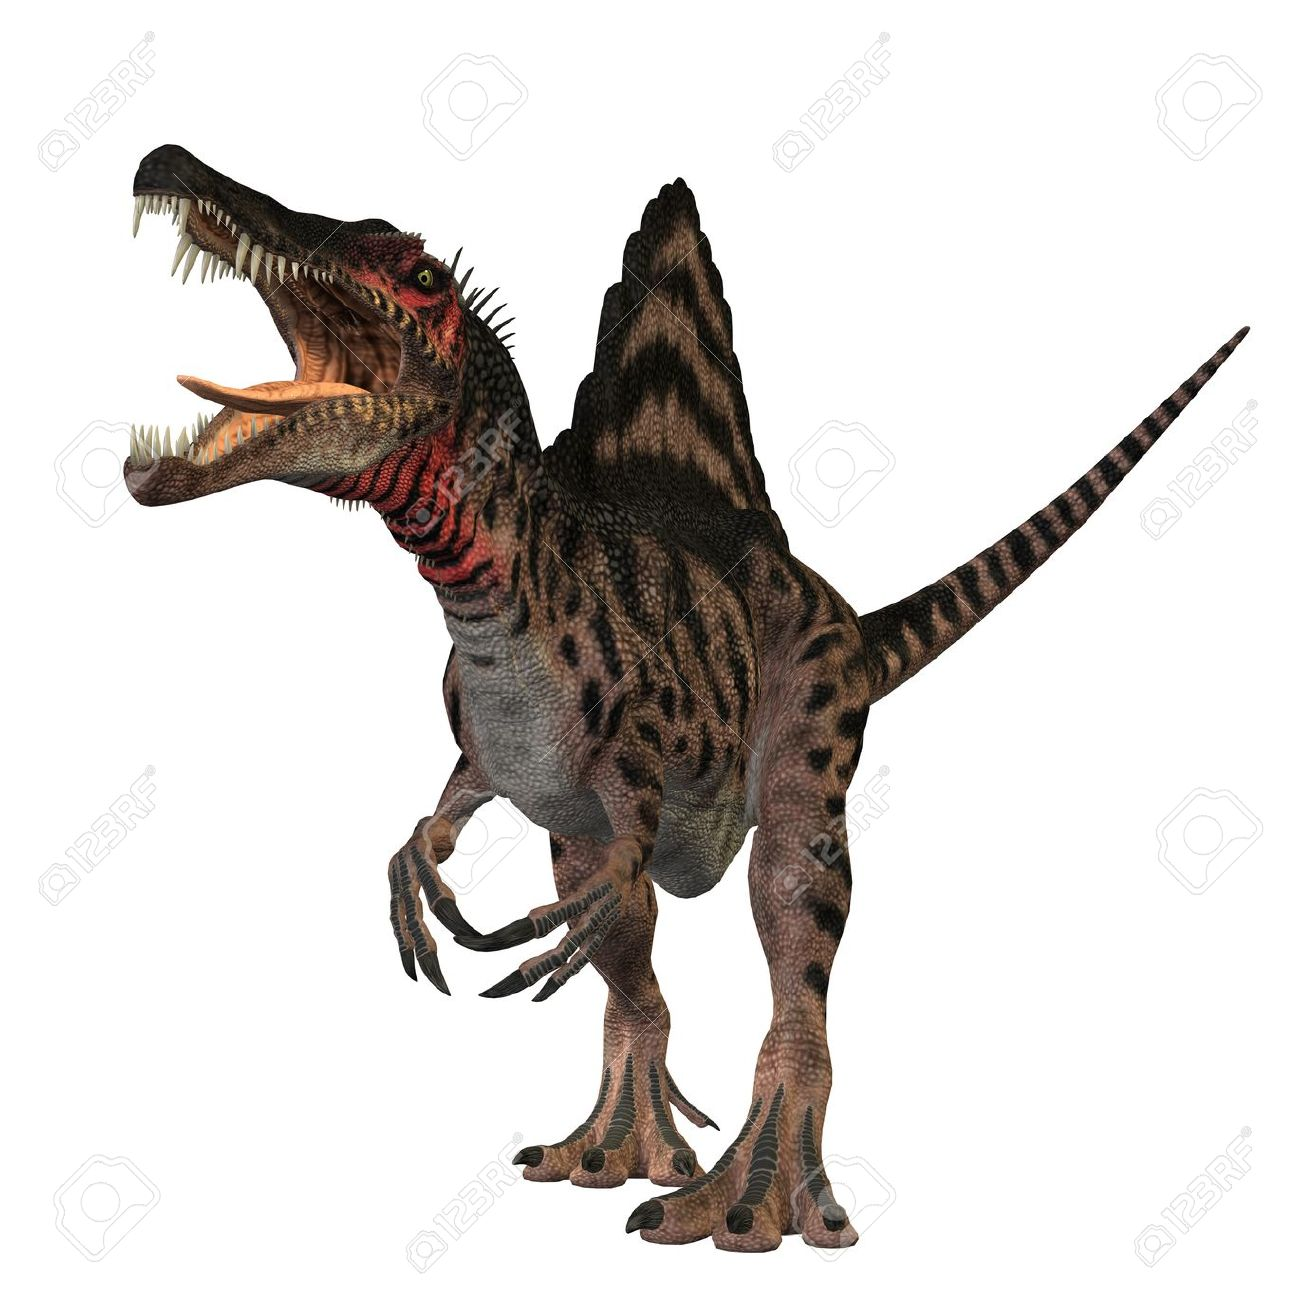 The Spinosaurus Dinosaur Was A Huge Carnivore Of The Cretaceous.